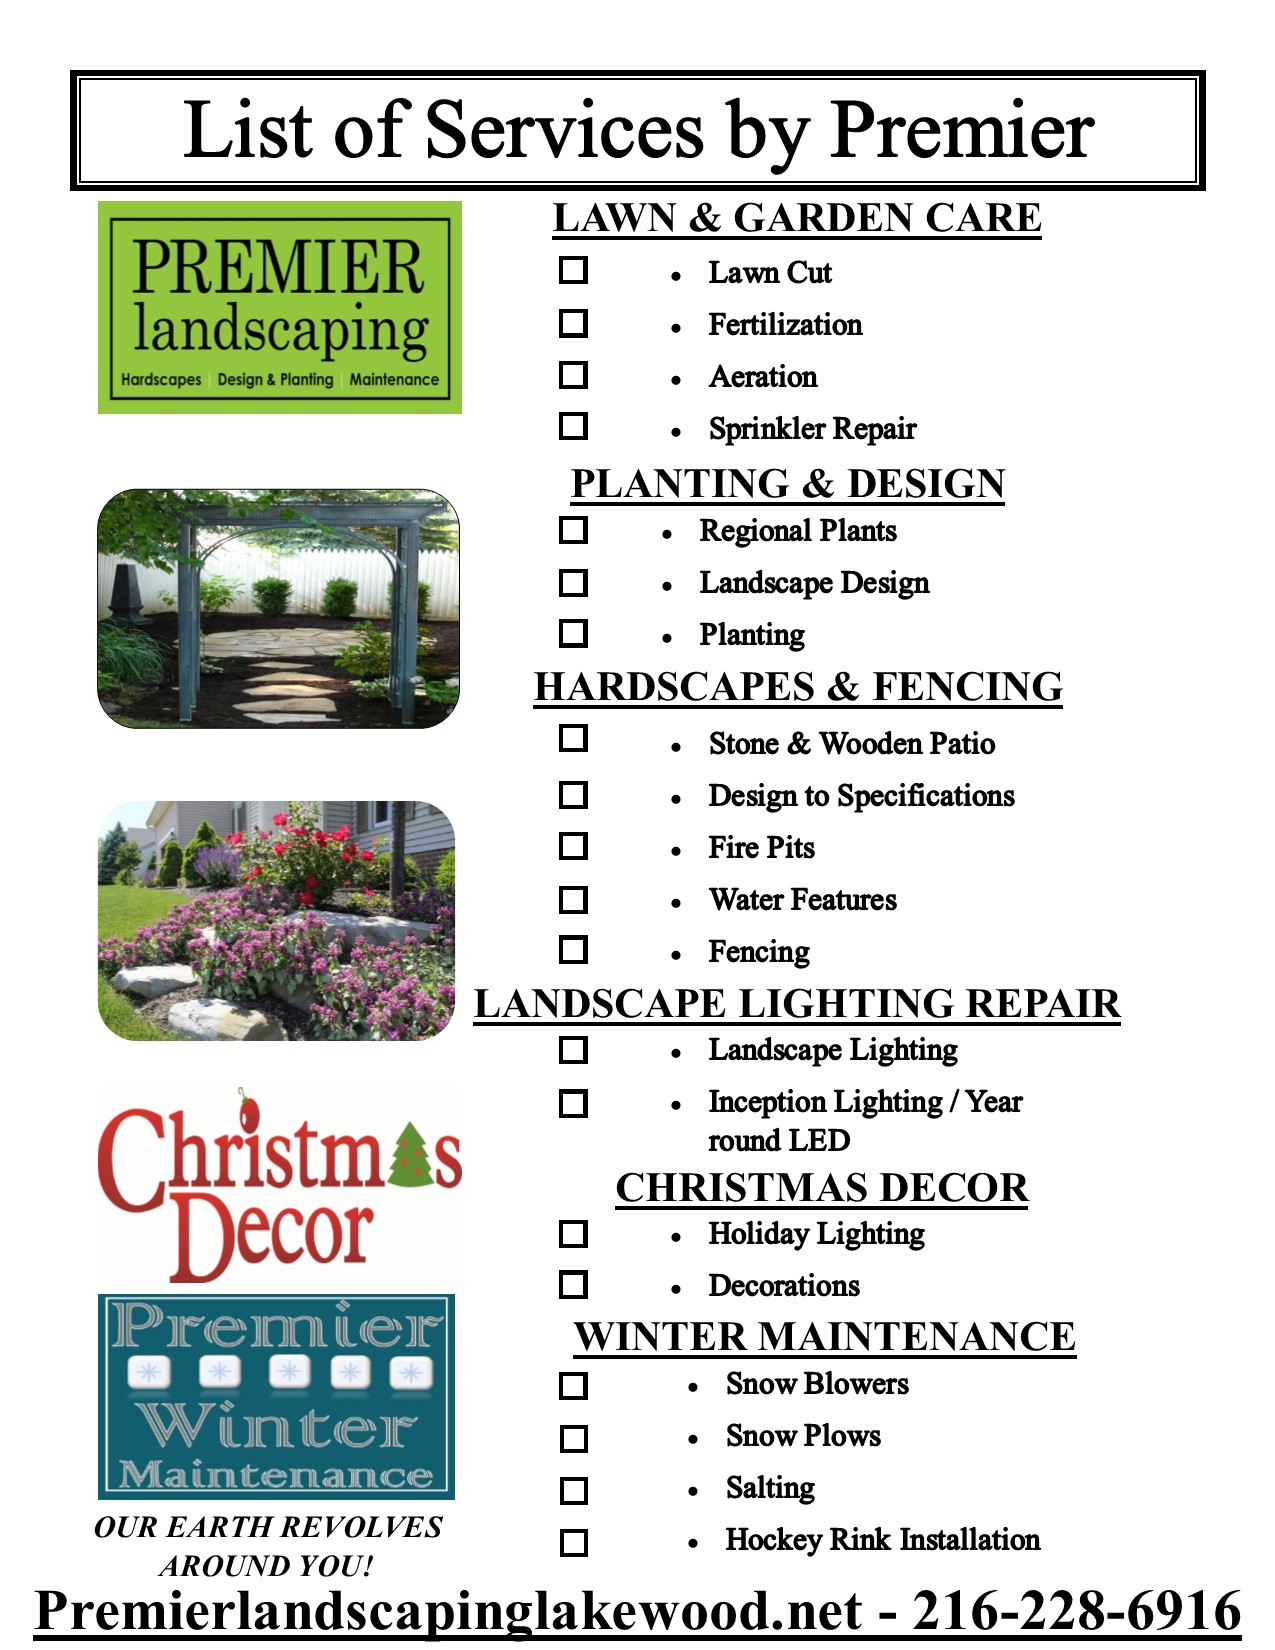 Winter Maintenance - Landscaping Archives Premier Landscaping